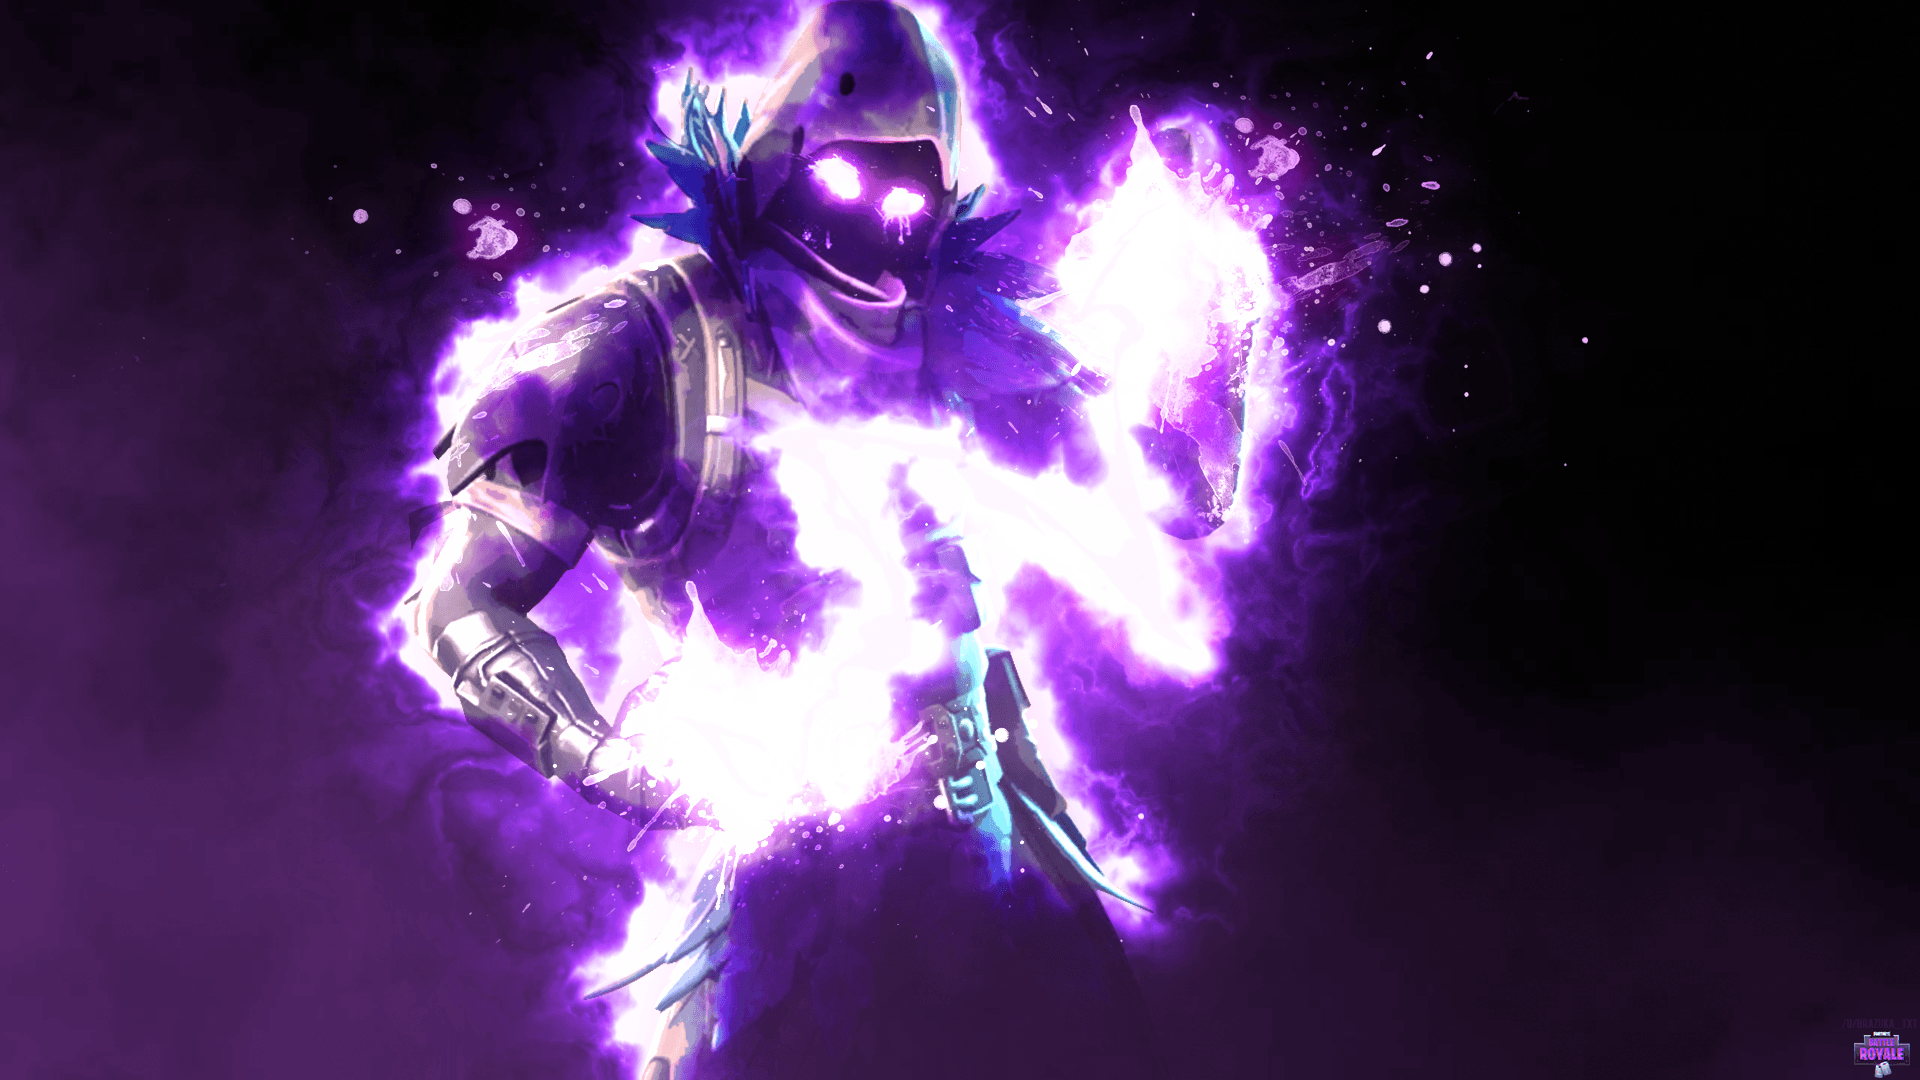 1920x1080 The Raven Lord (1080p Wallpaper, more versions in the comments ...